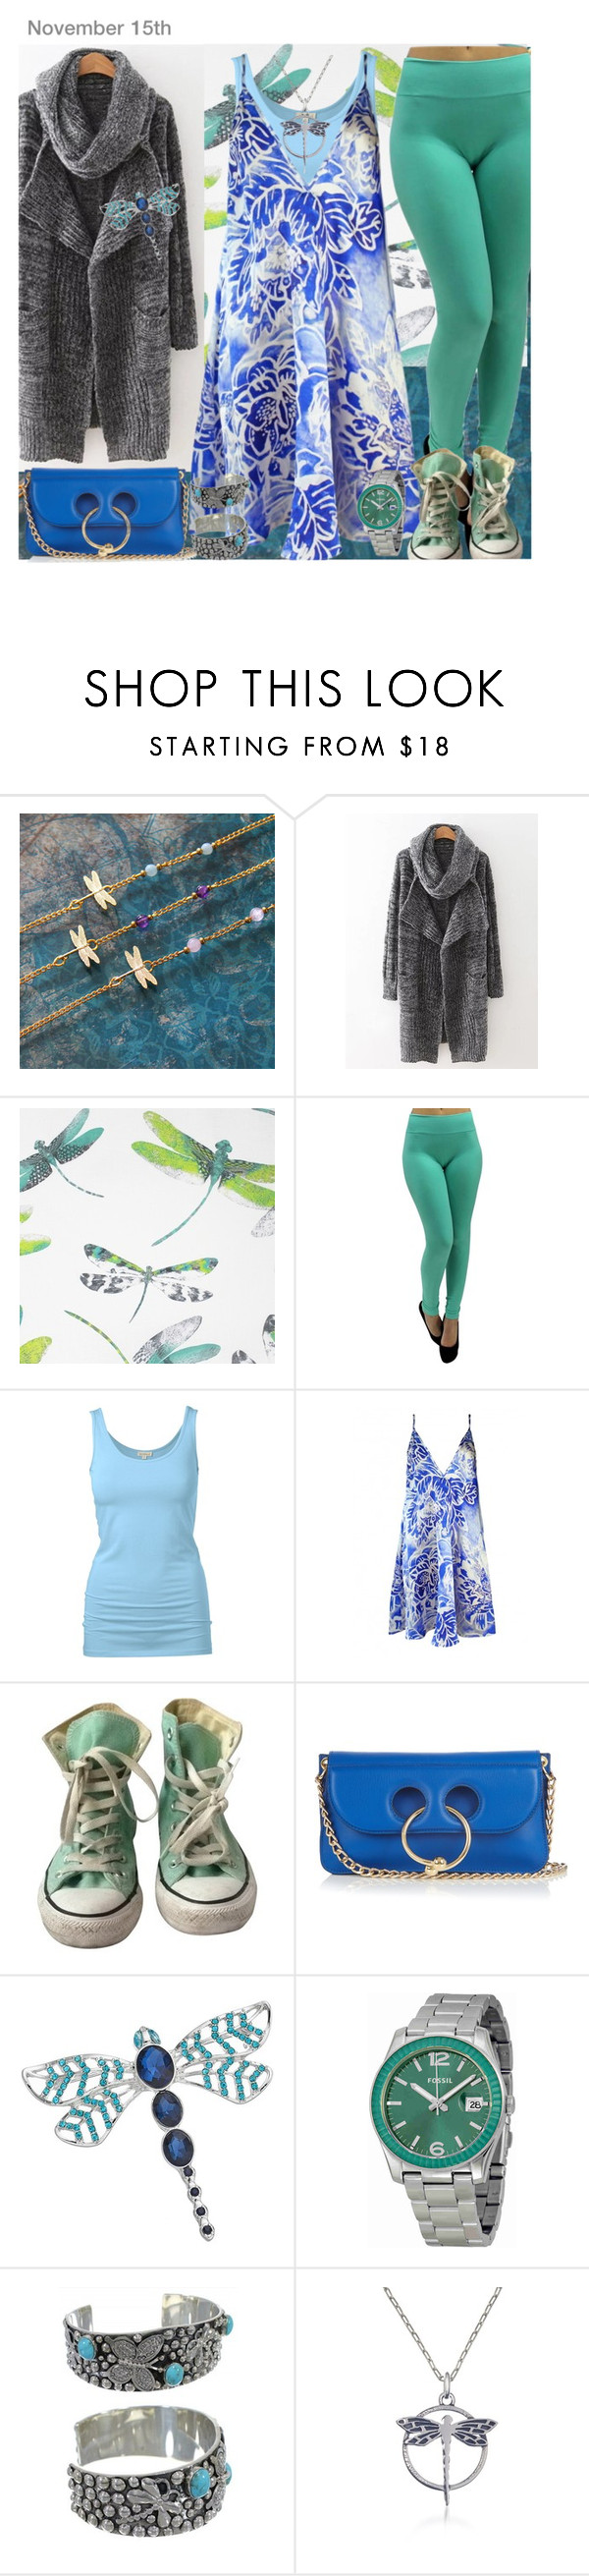 """""""OOTD"""" by yesitsme123 ❤ liked on Polyvore featuring MARA, Osborne & Little, Plakinger, Converse, J.W. Anderson, Dana Buchman and FOSSIL"""